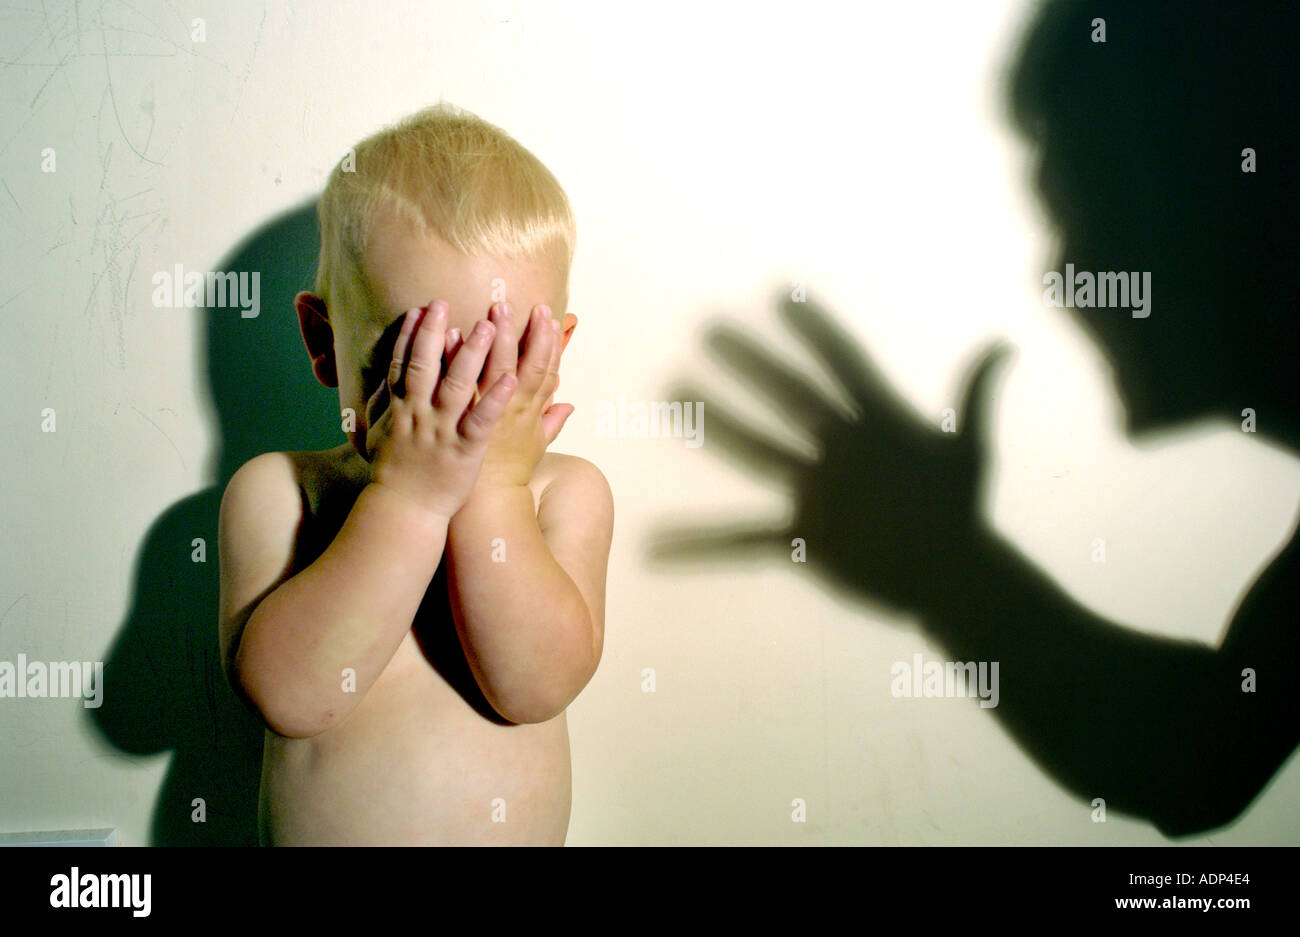 A terrified tearful child threatened with abuse with shadow of abuser looming over him - Stock Image